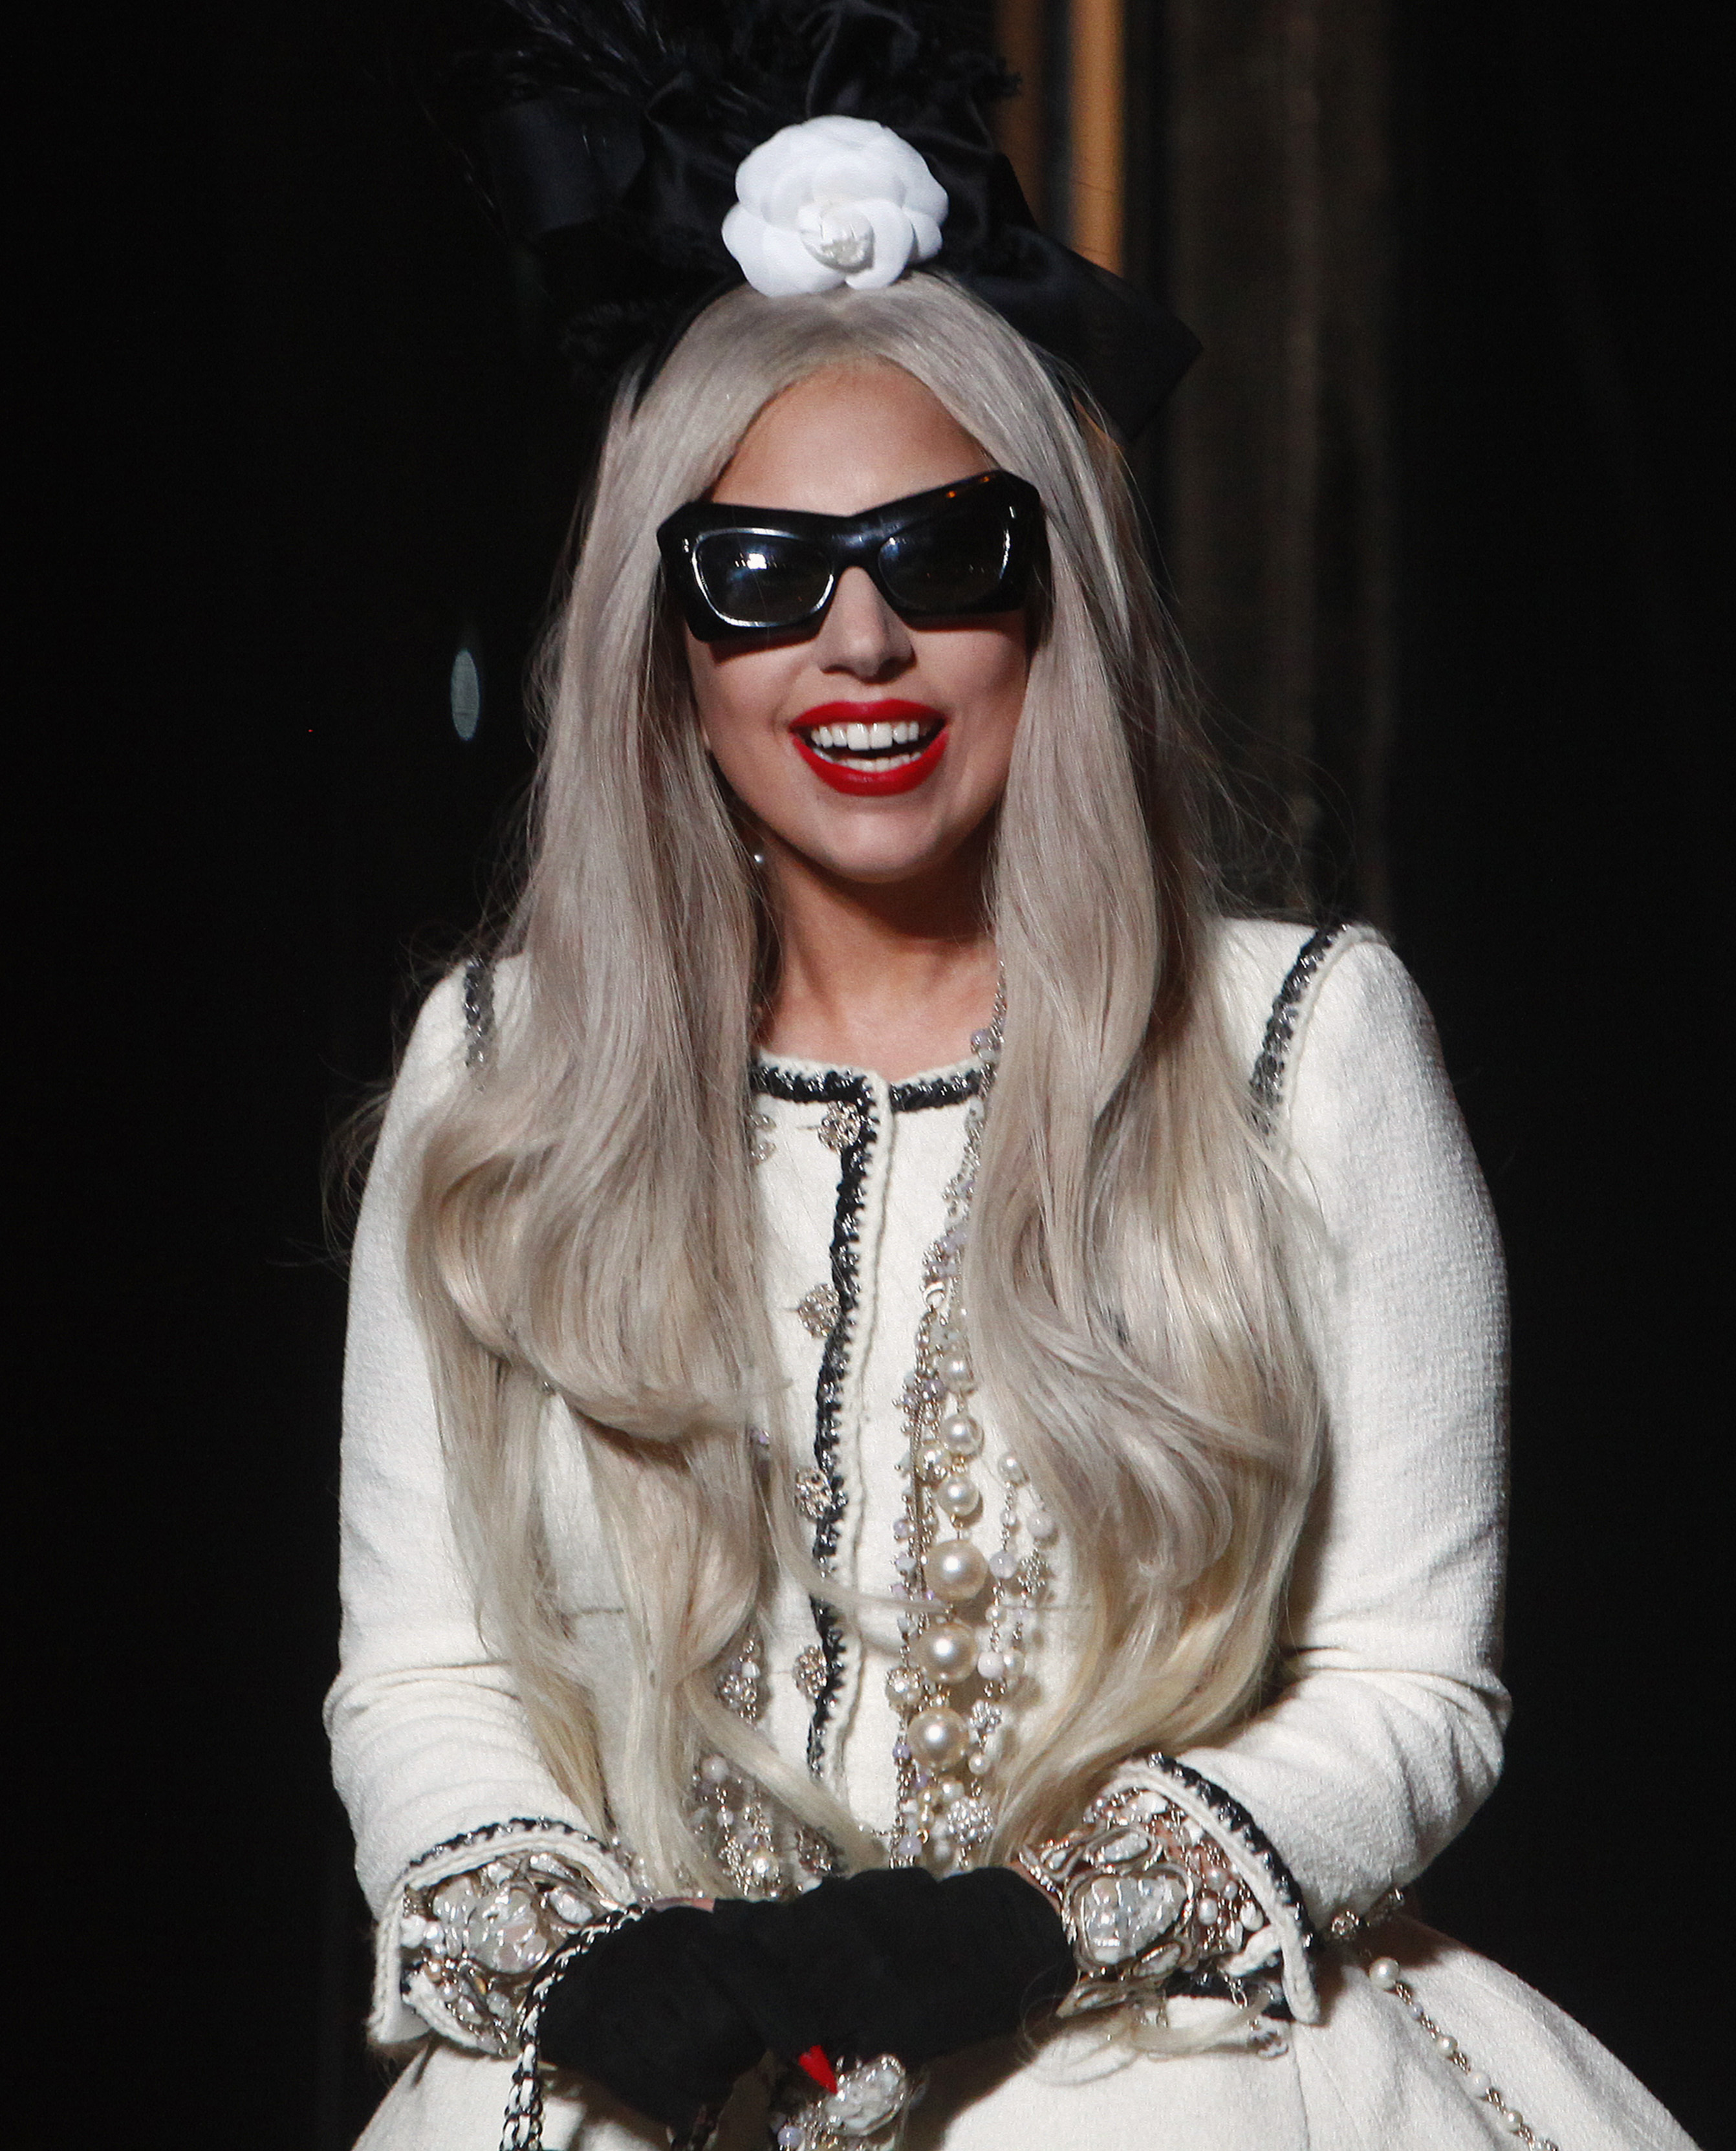 Singer Lady Gaga appears at a ribbon cutting ceremony of Gaga's Workshop at luxury department store Barneys in New York. ©REUTERS/ERIC THAYER